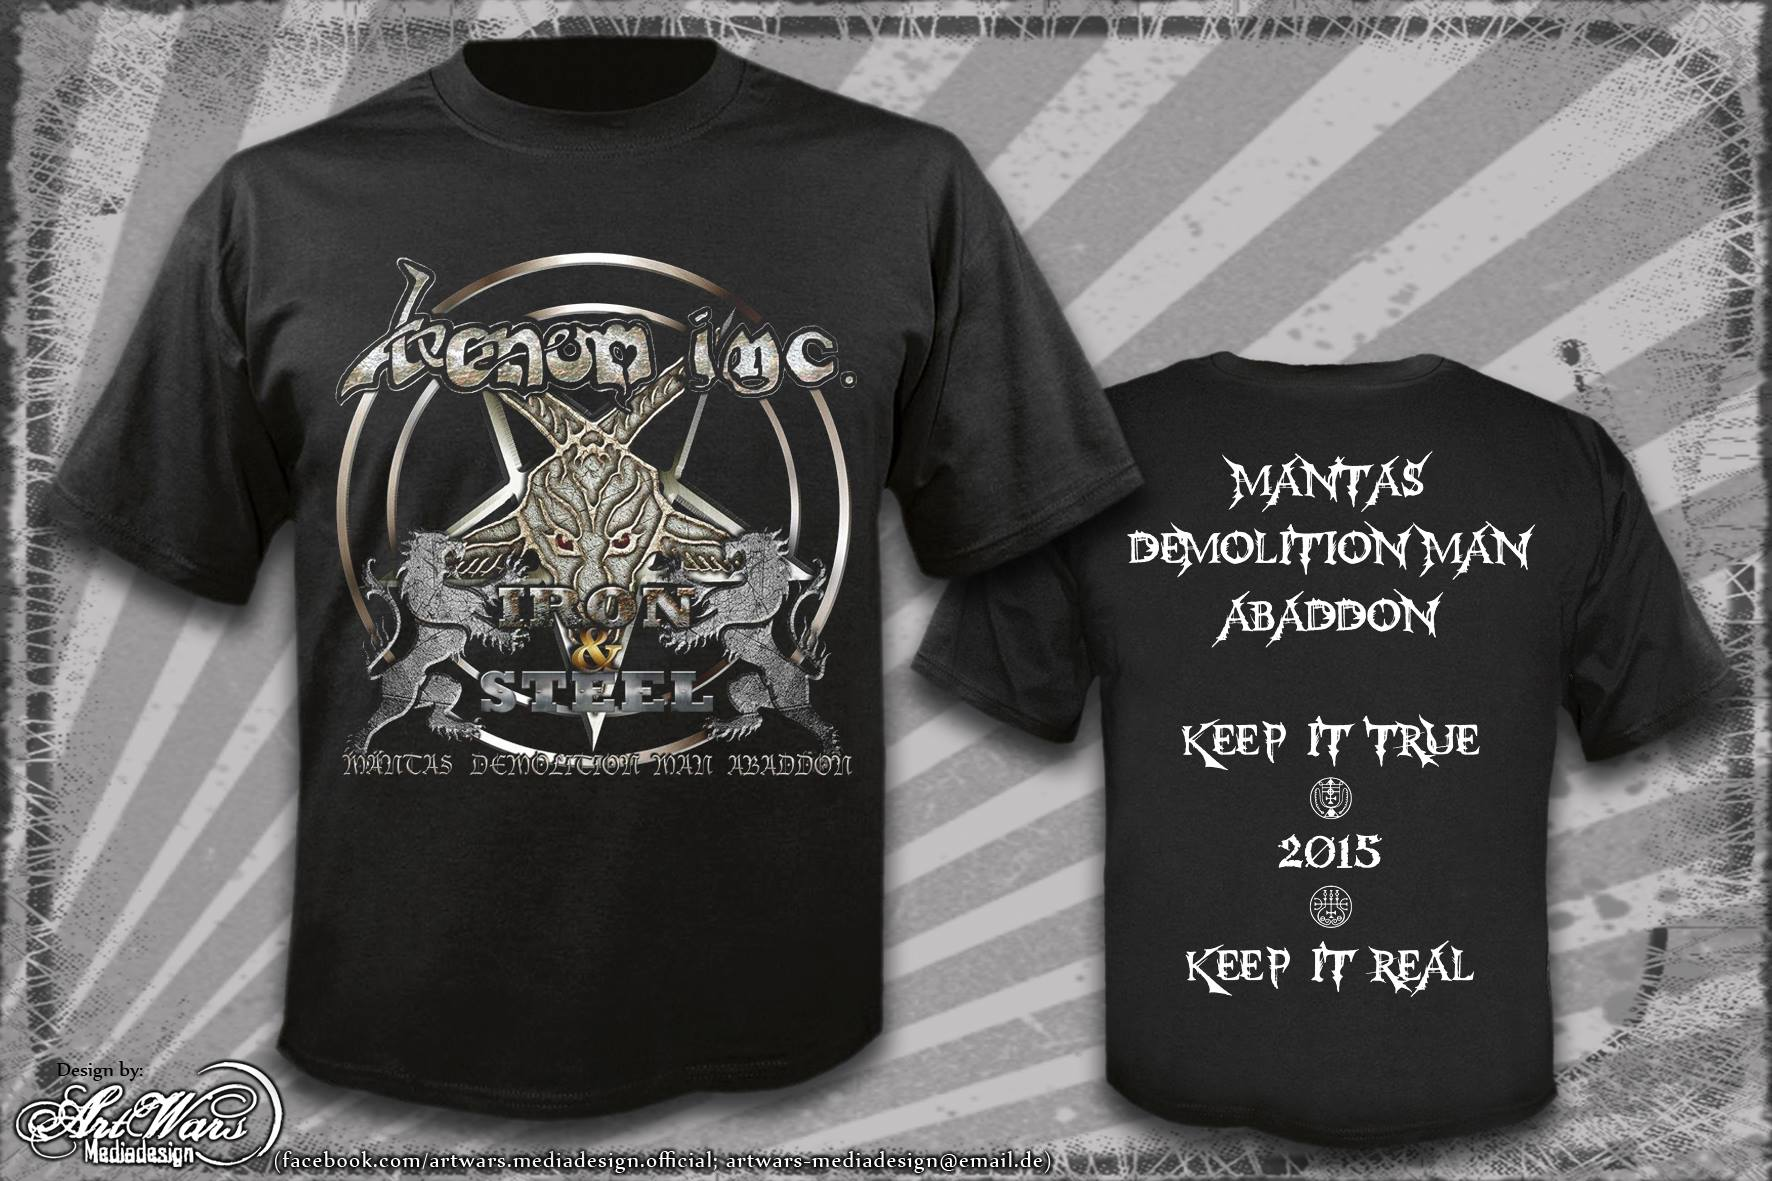 http://venom-inc.tripod.com/merch/venom_inc_iron_and_steel_shirt001.jpg